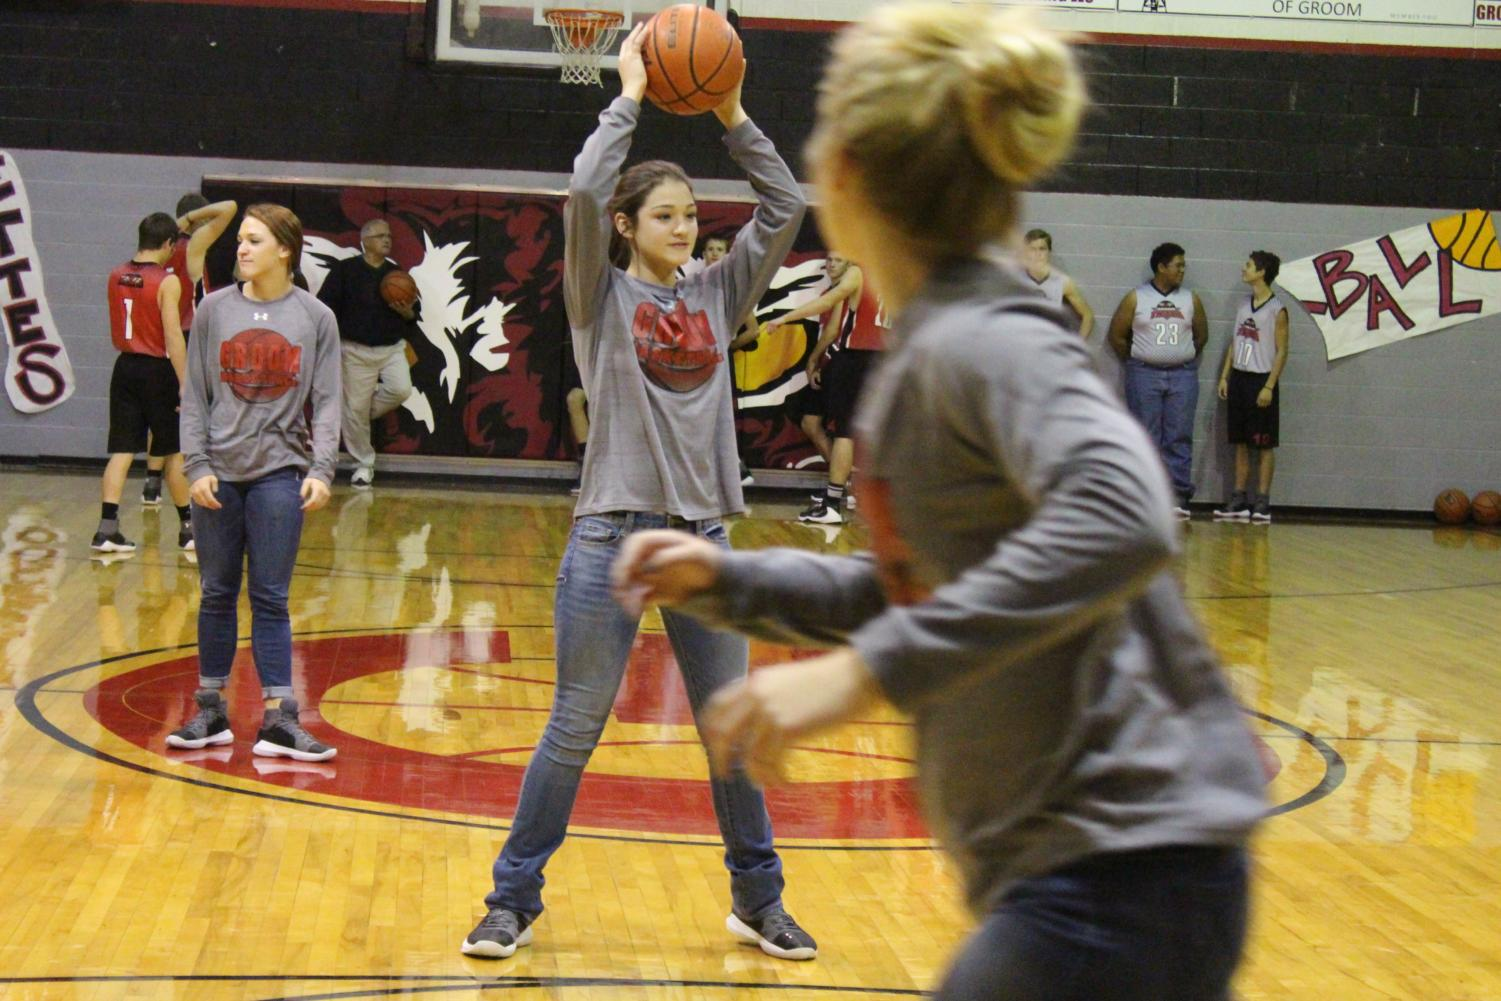 Varsity basketball team member and freshman Aubrey Ritter searches for an open teammate to pass the ball during a drill. Groom's girls' and boys' basketball teams will be playing tonight at 6 at Adrian's gym.